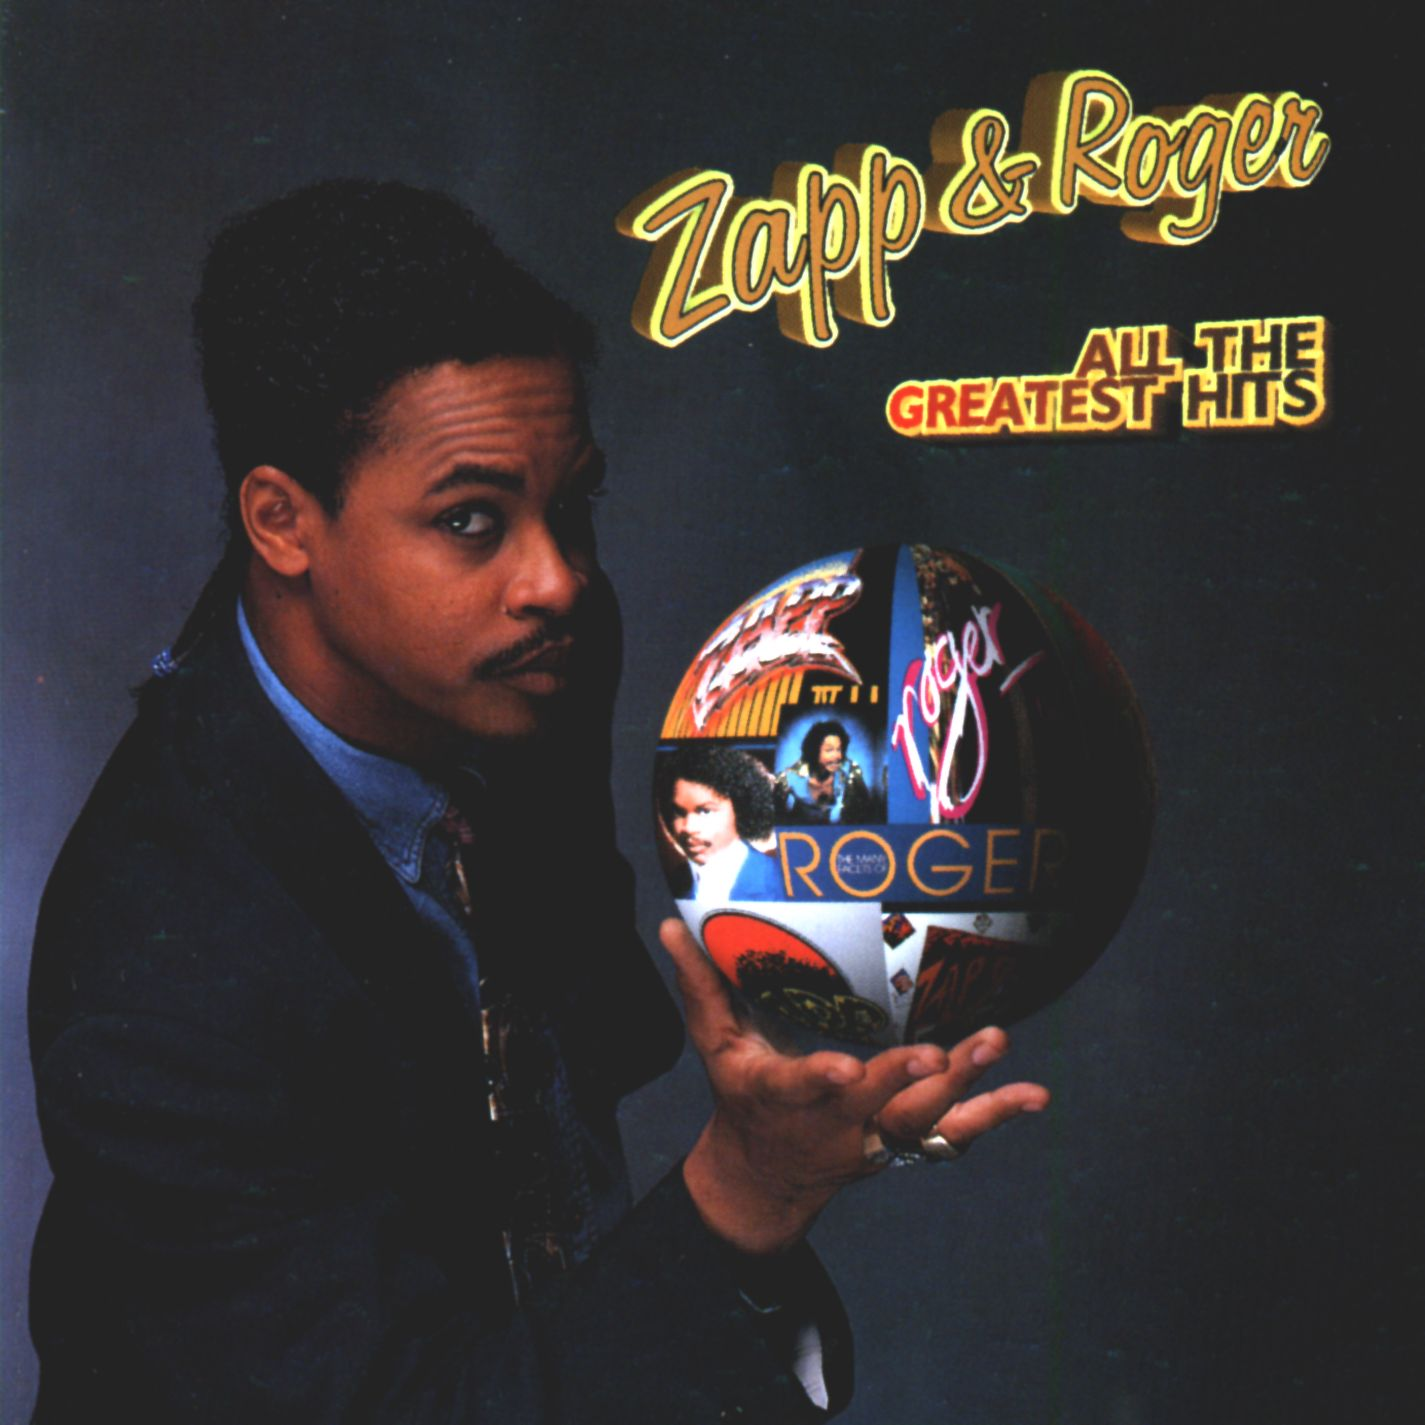 Zapp & roger: all the greatest hits by zapp & roger on apple music.